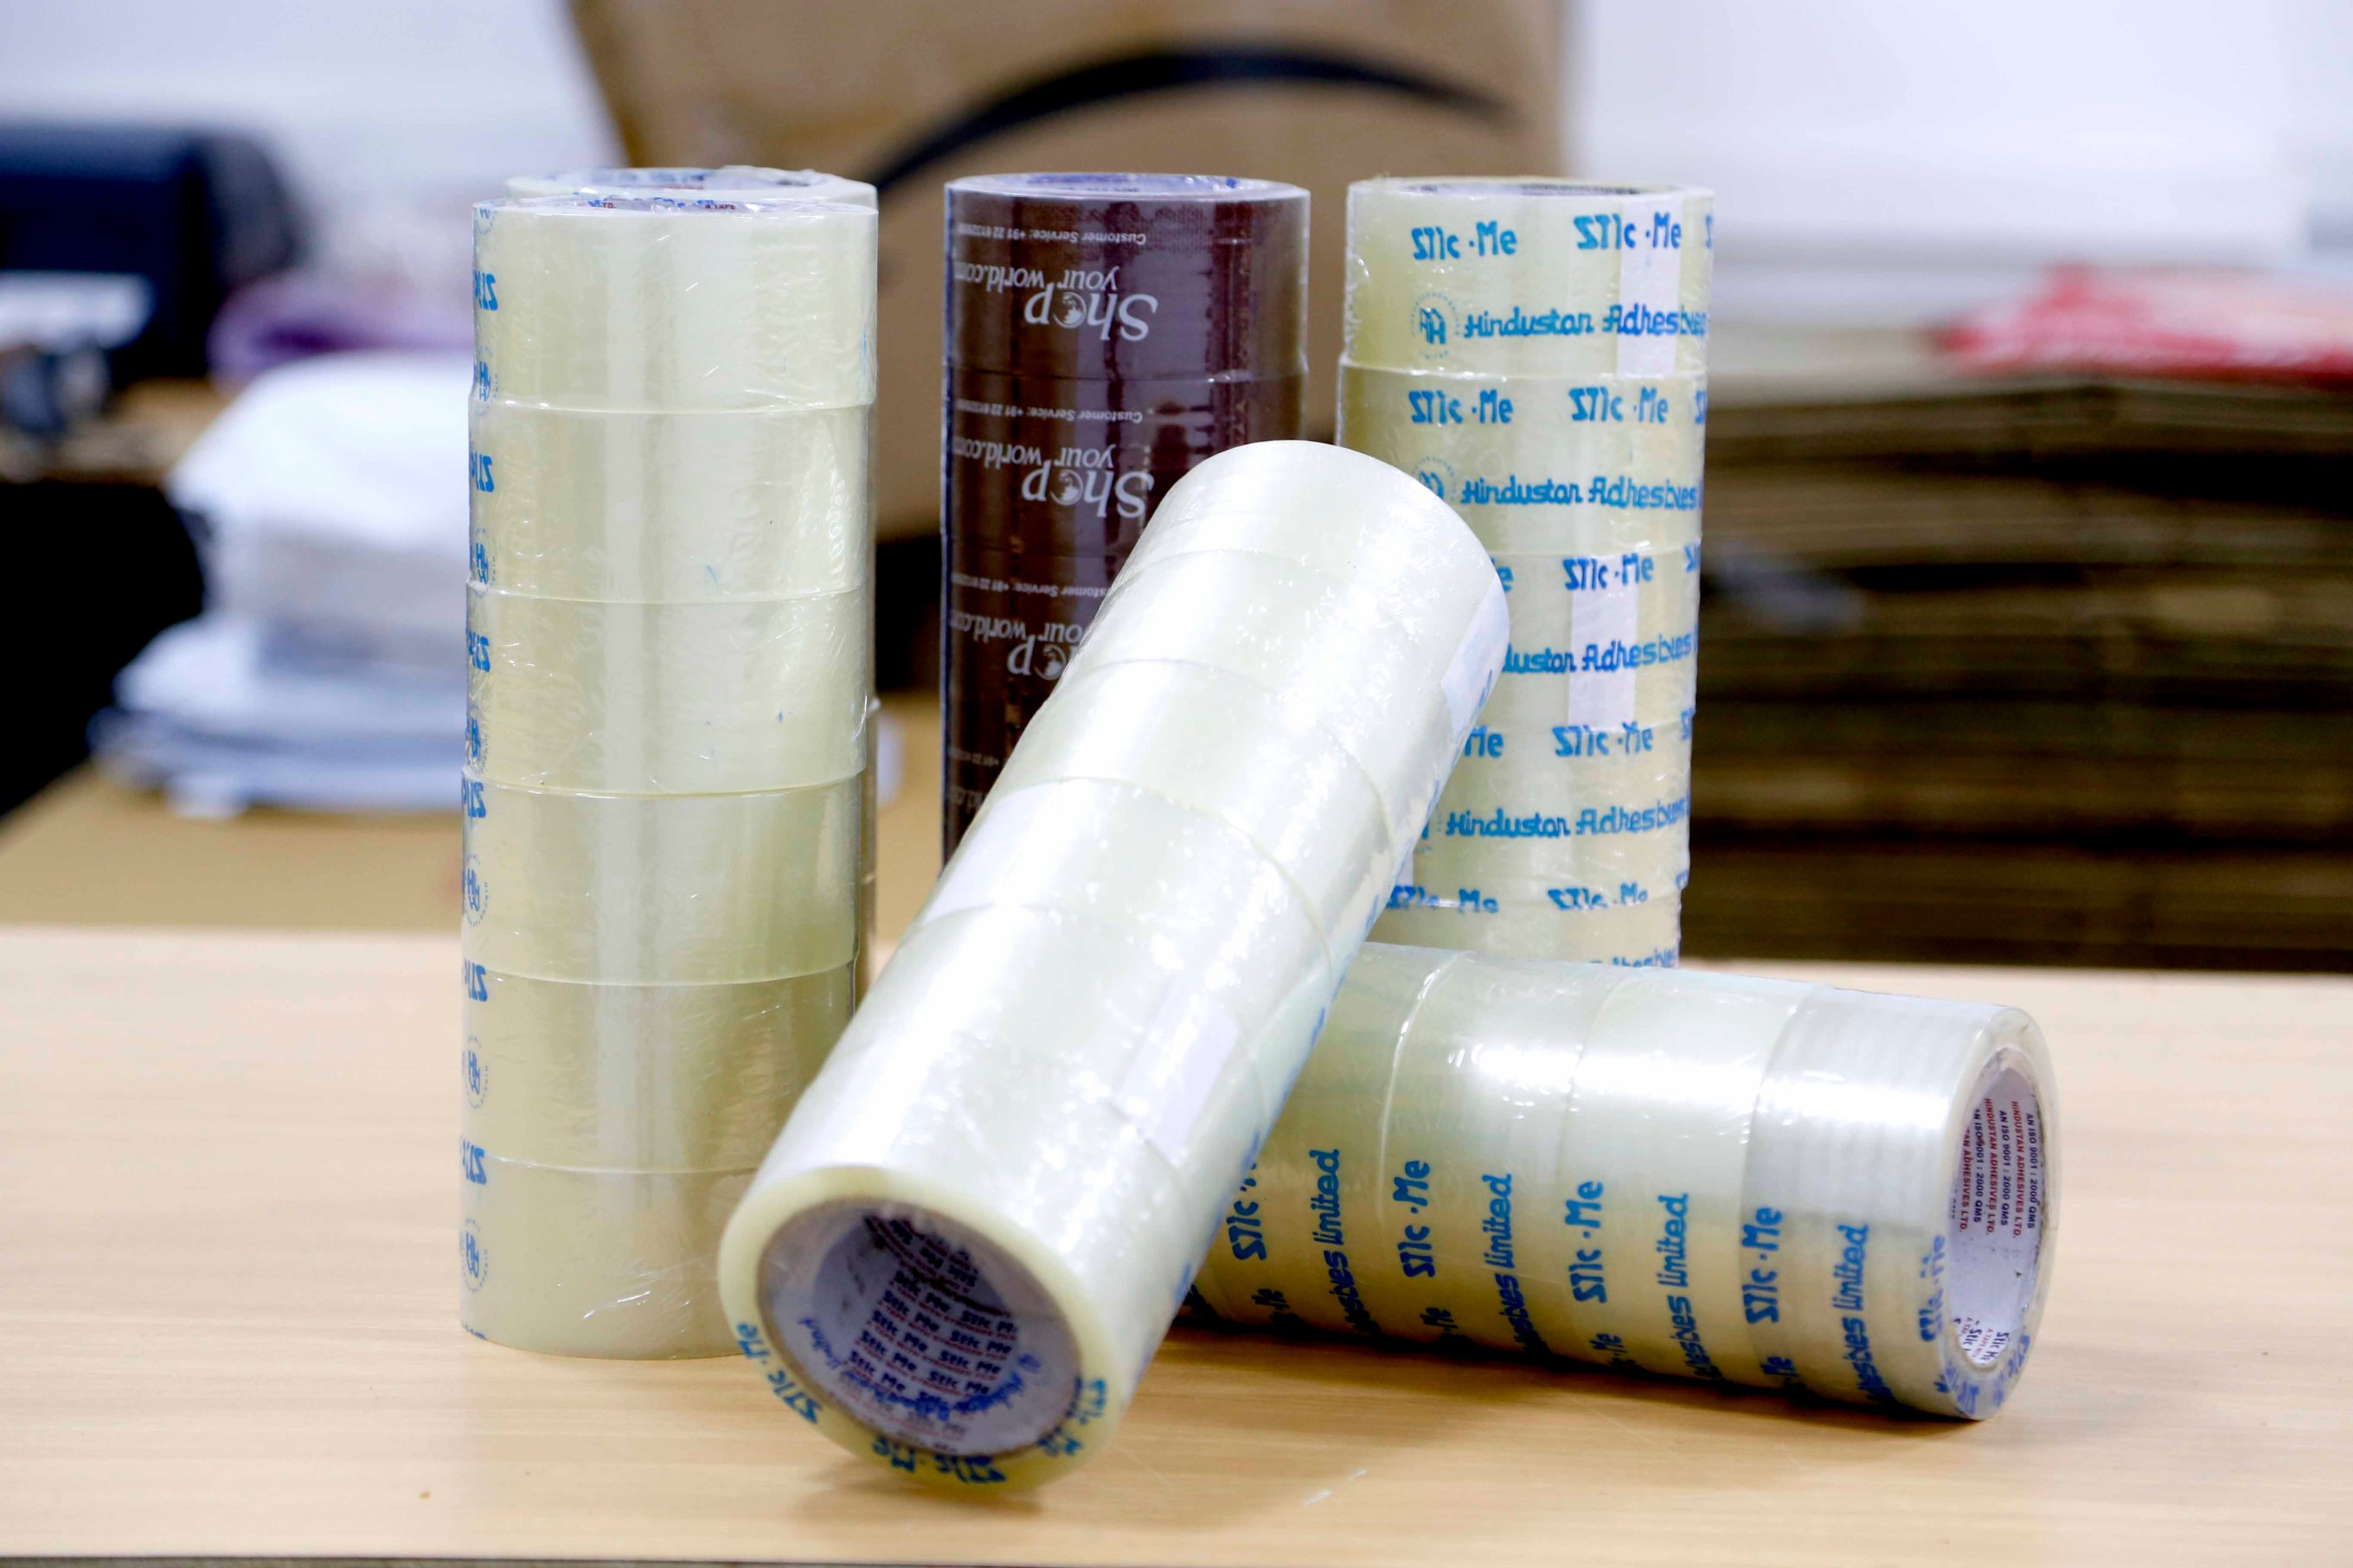 adhesive-tape-packaging-ecommerce-logistics-product